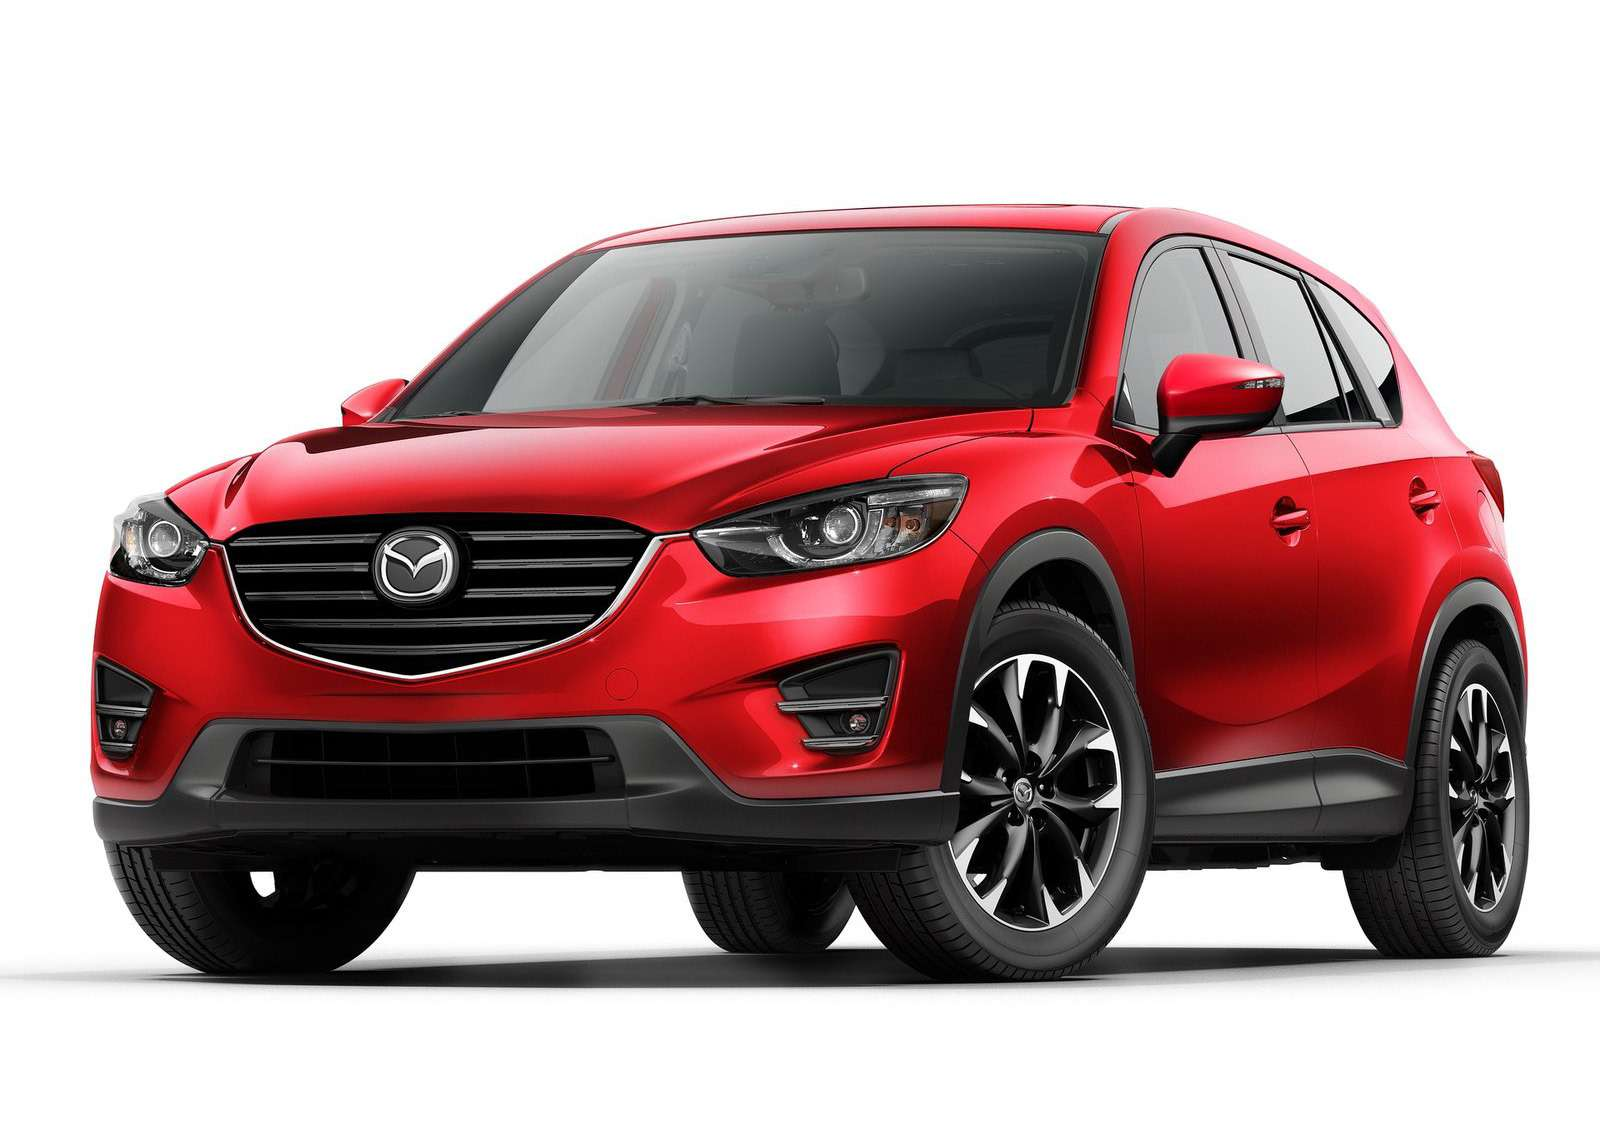 Mazda-CX-5_2016_1600x1200_wallpaper_14